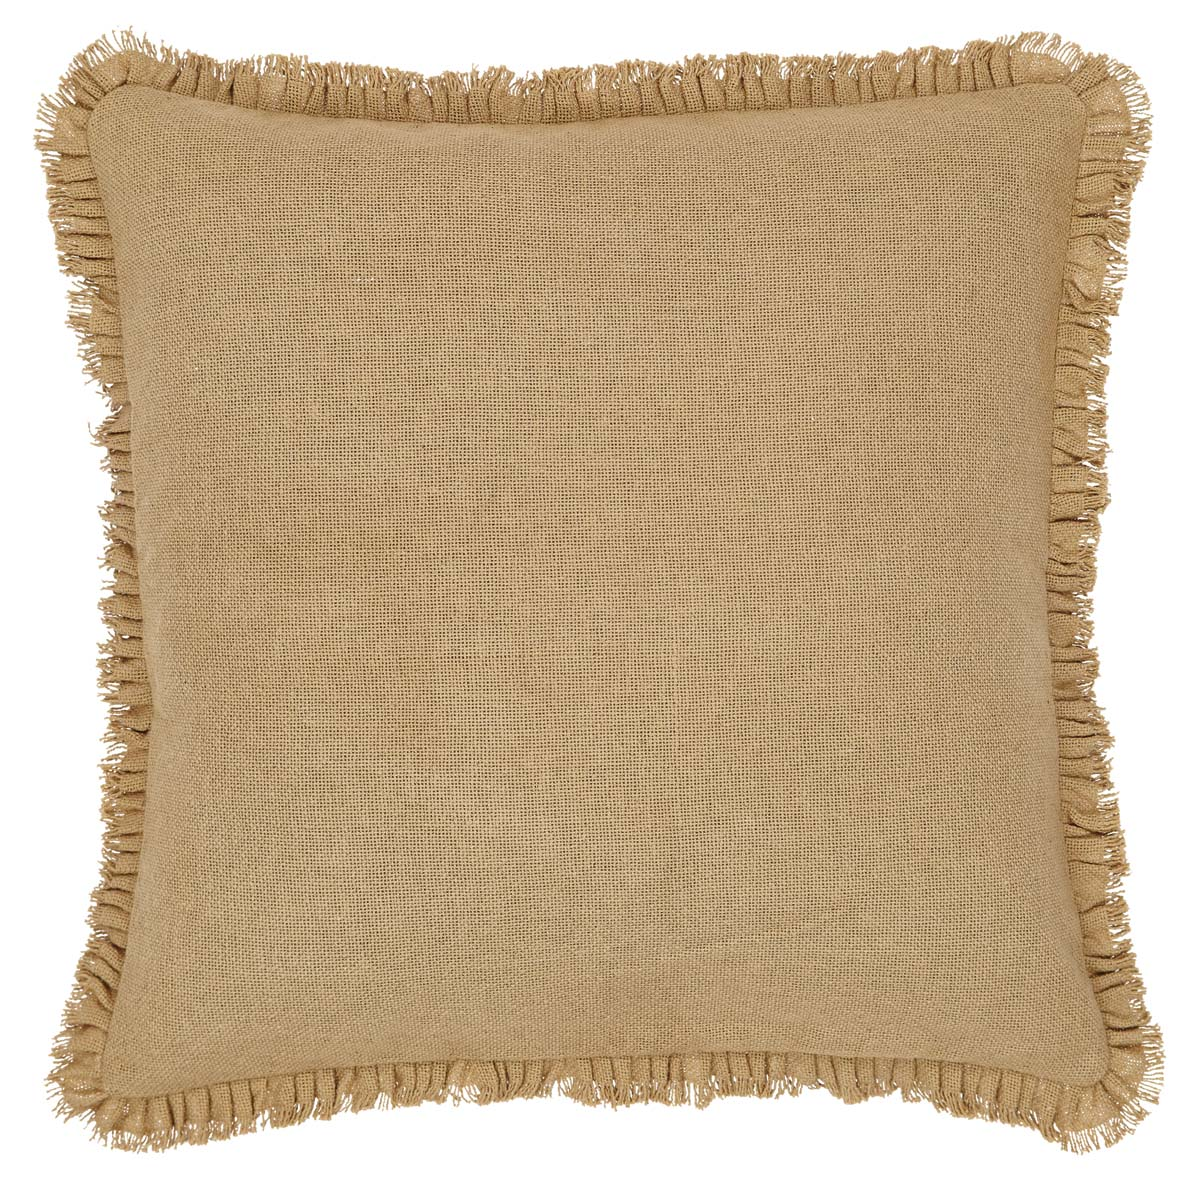 Burlap Natural Fabric Euro Sham w/ Fringed Ruffle 26x26